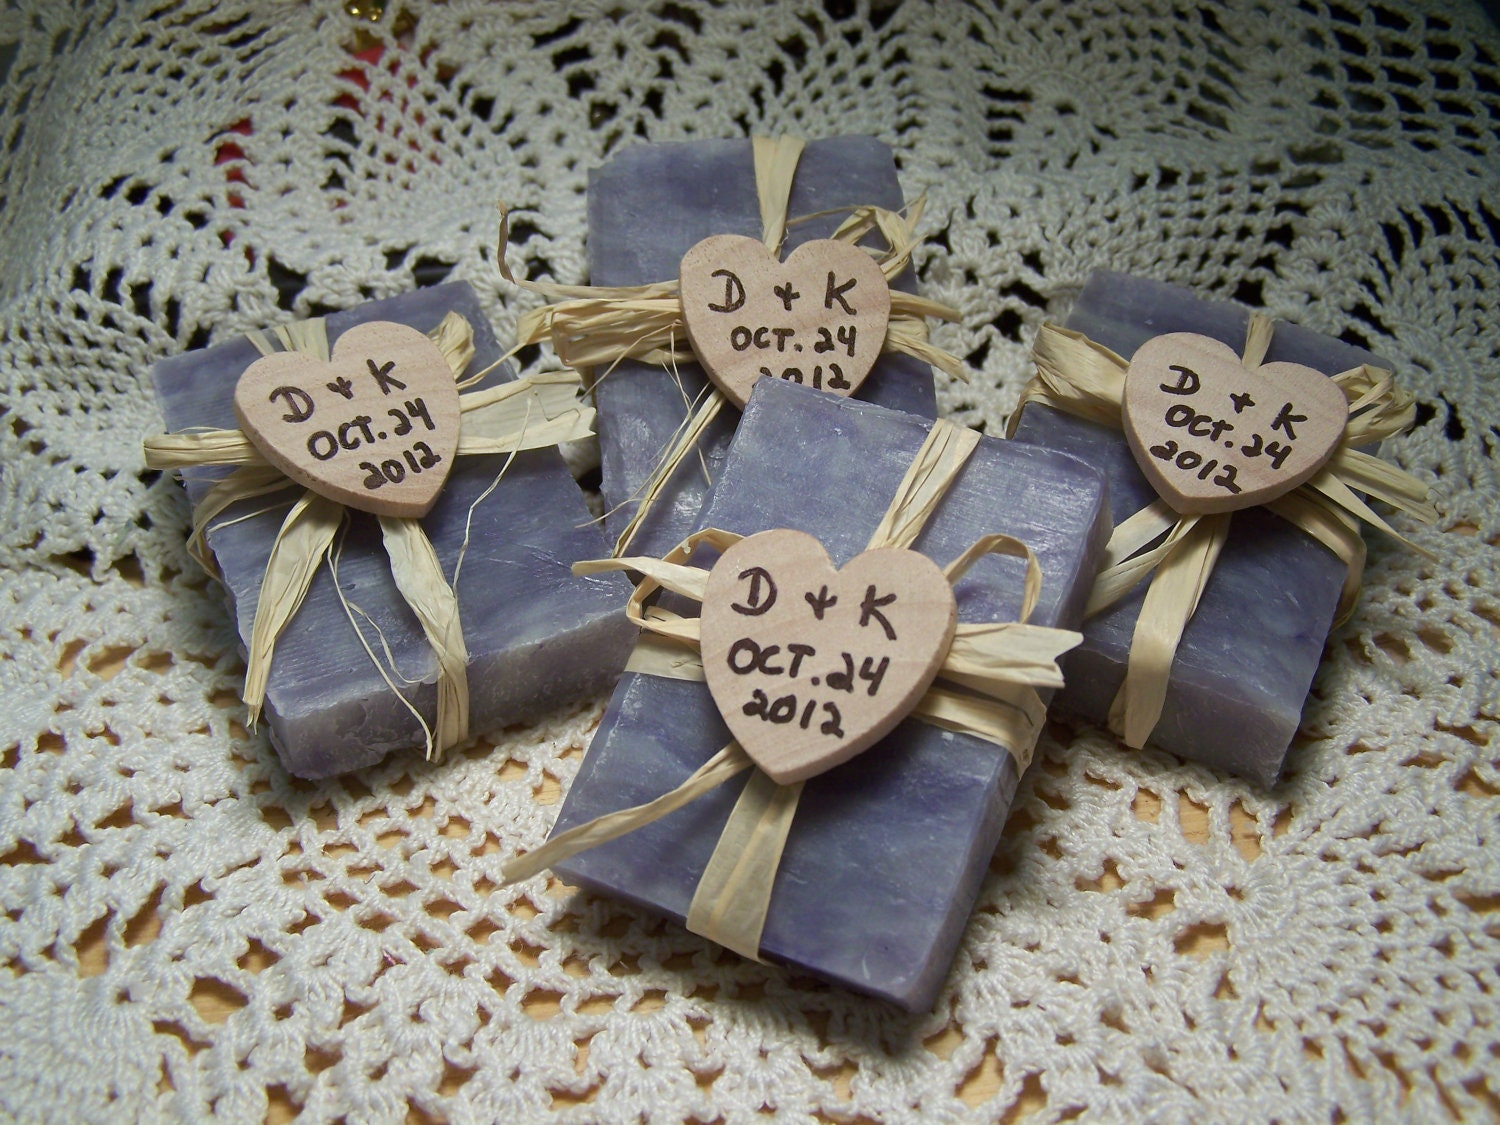 25 bridal shower favors soaps mini soaps lavender shea - Homemade soap with lavender the perfect gift ...